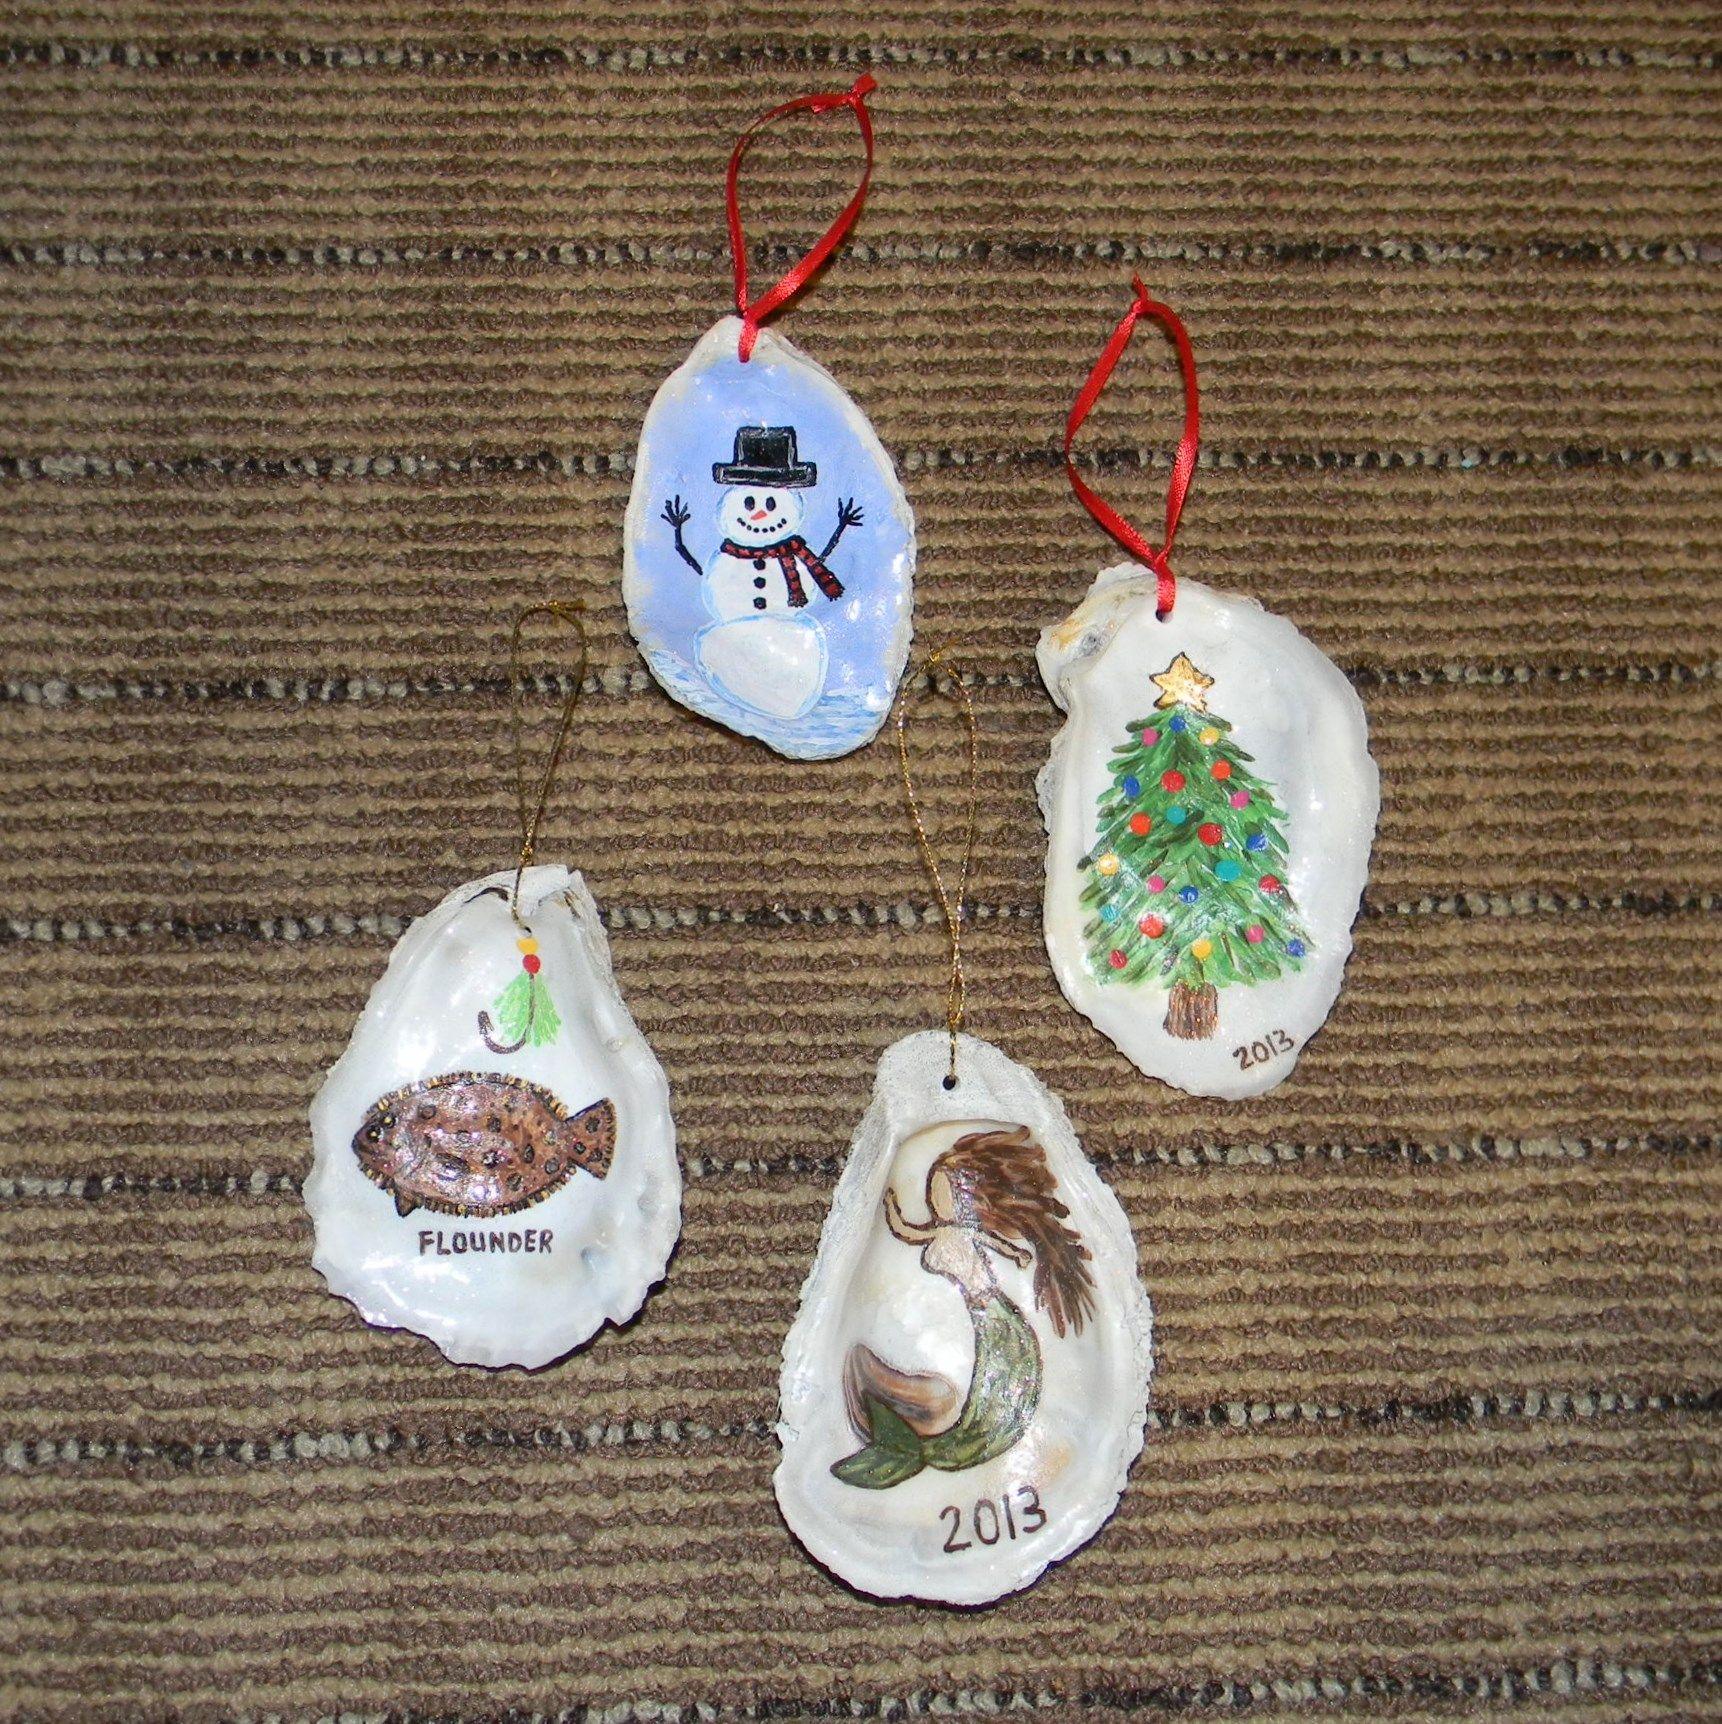 Www Facebook Com Renewedbypaint Hand Painted Oyster Shell Ornaments Oyster Shell Crafts Oyster Ornament Oyster Shells Diy